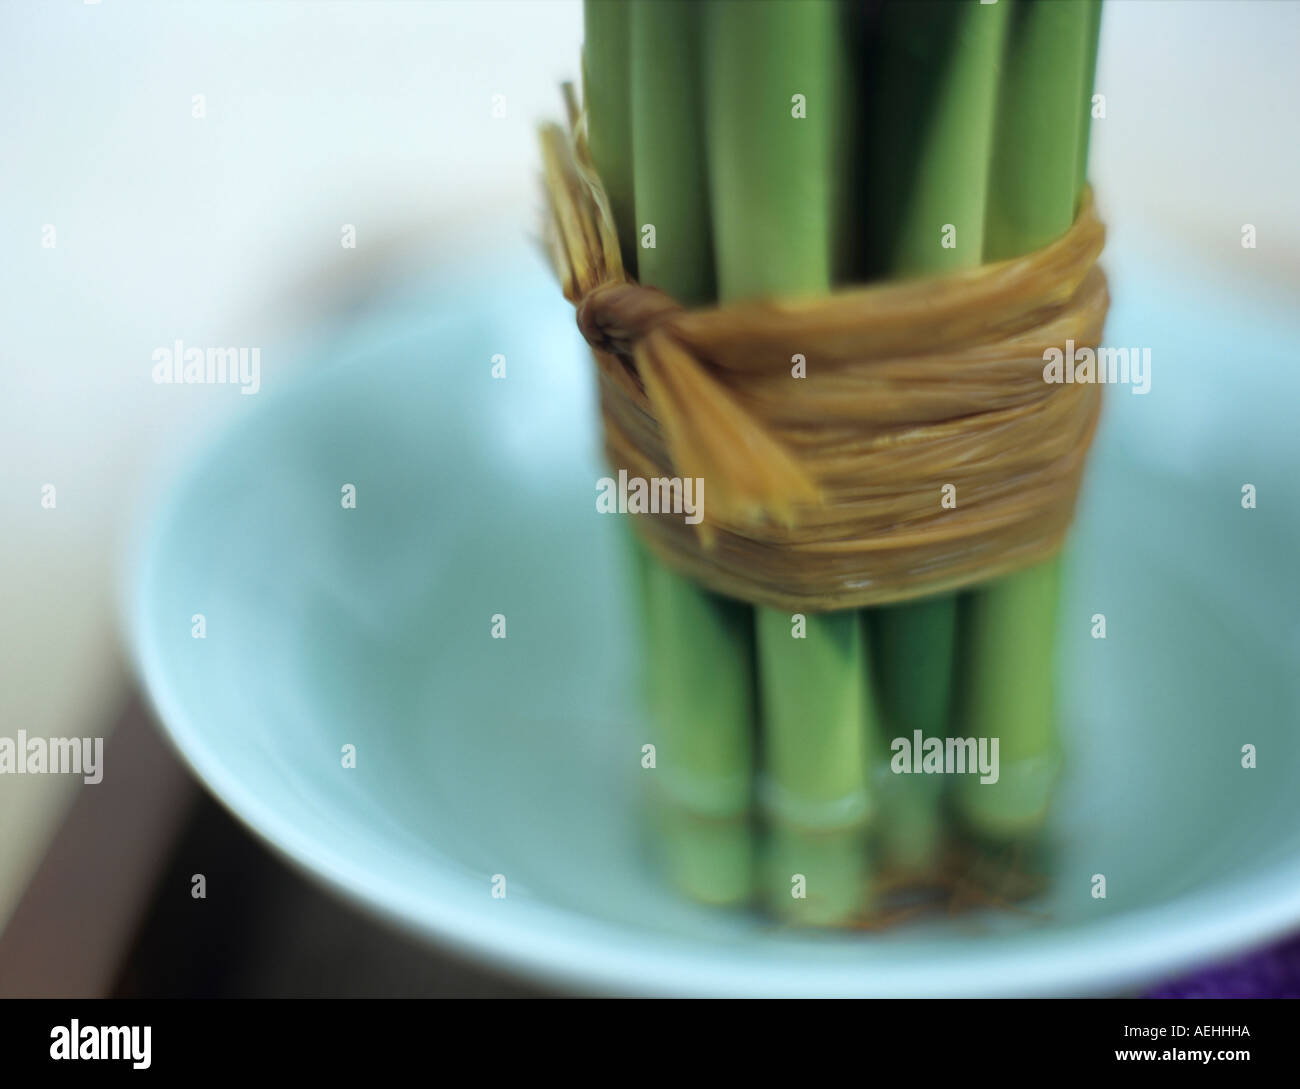 Bamboo tied with bast, close-up - Stock Image